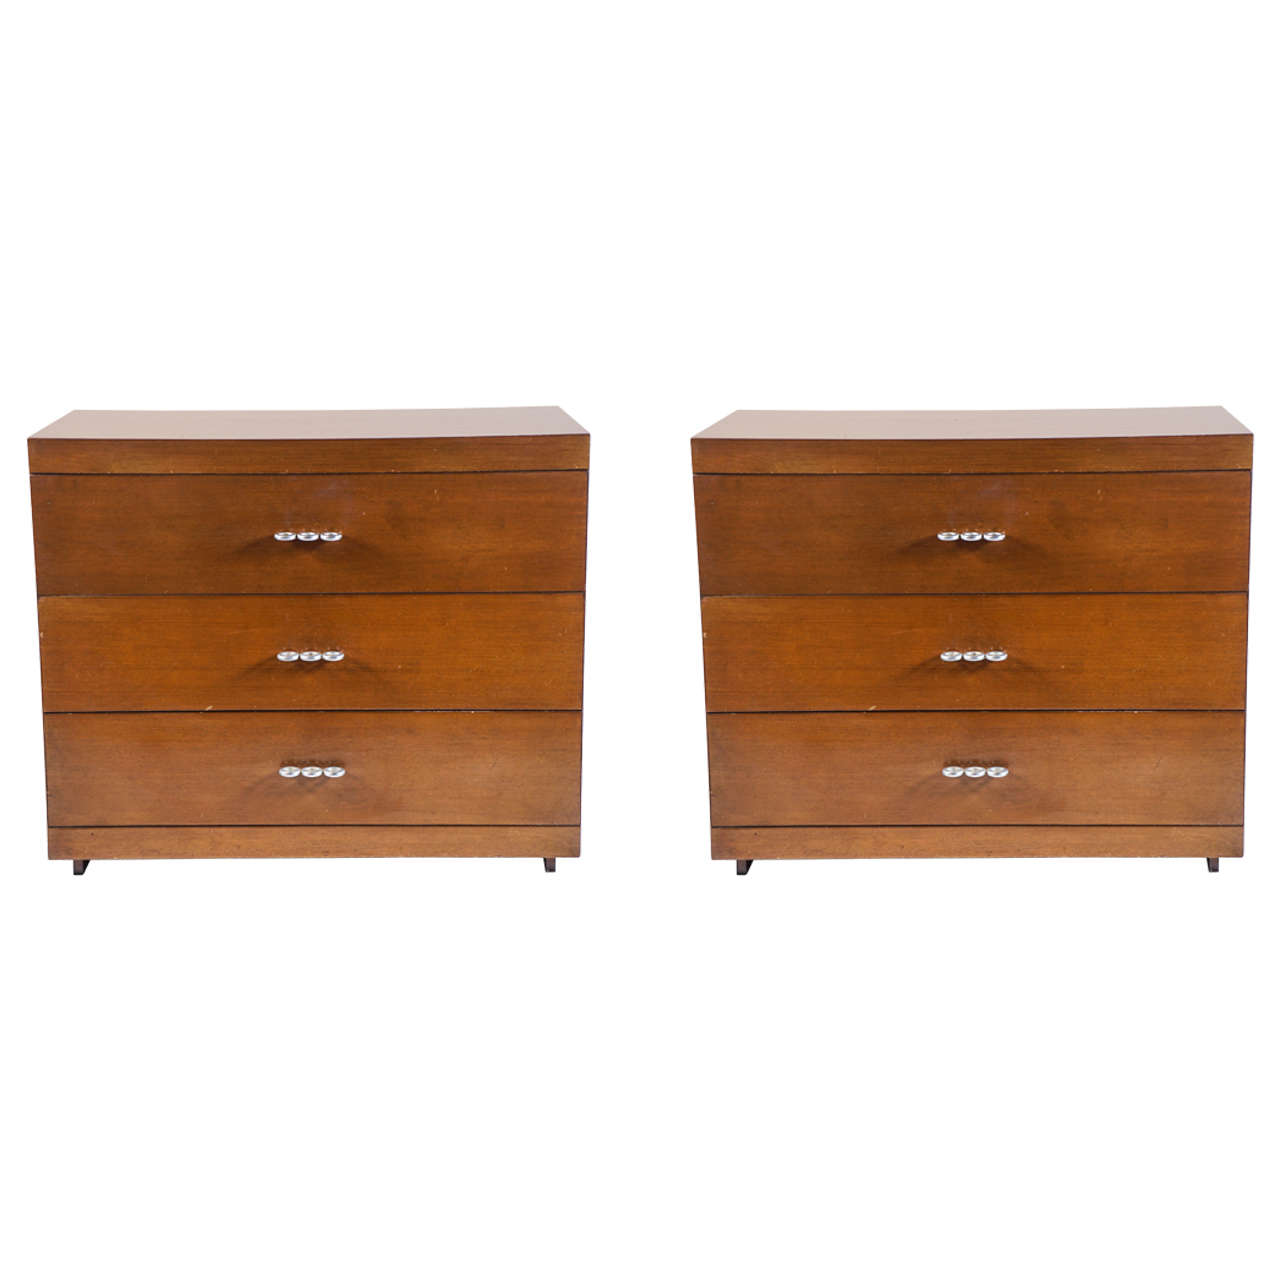 Pair of Dressers or modes by Martin Feinman for